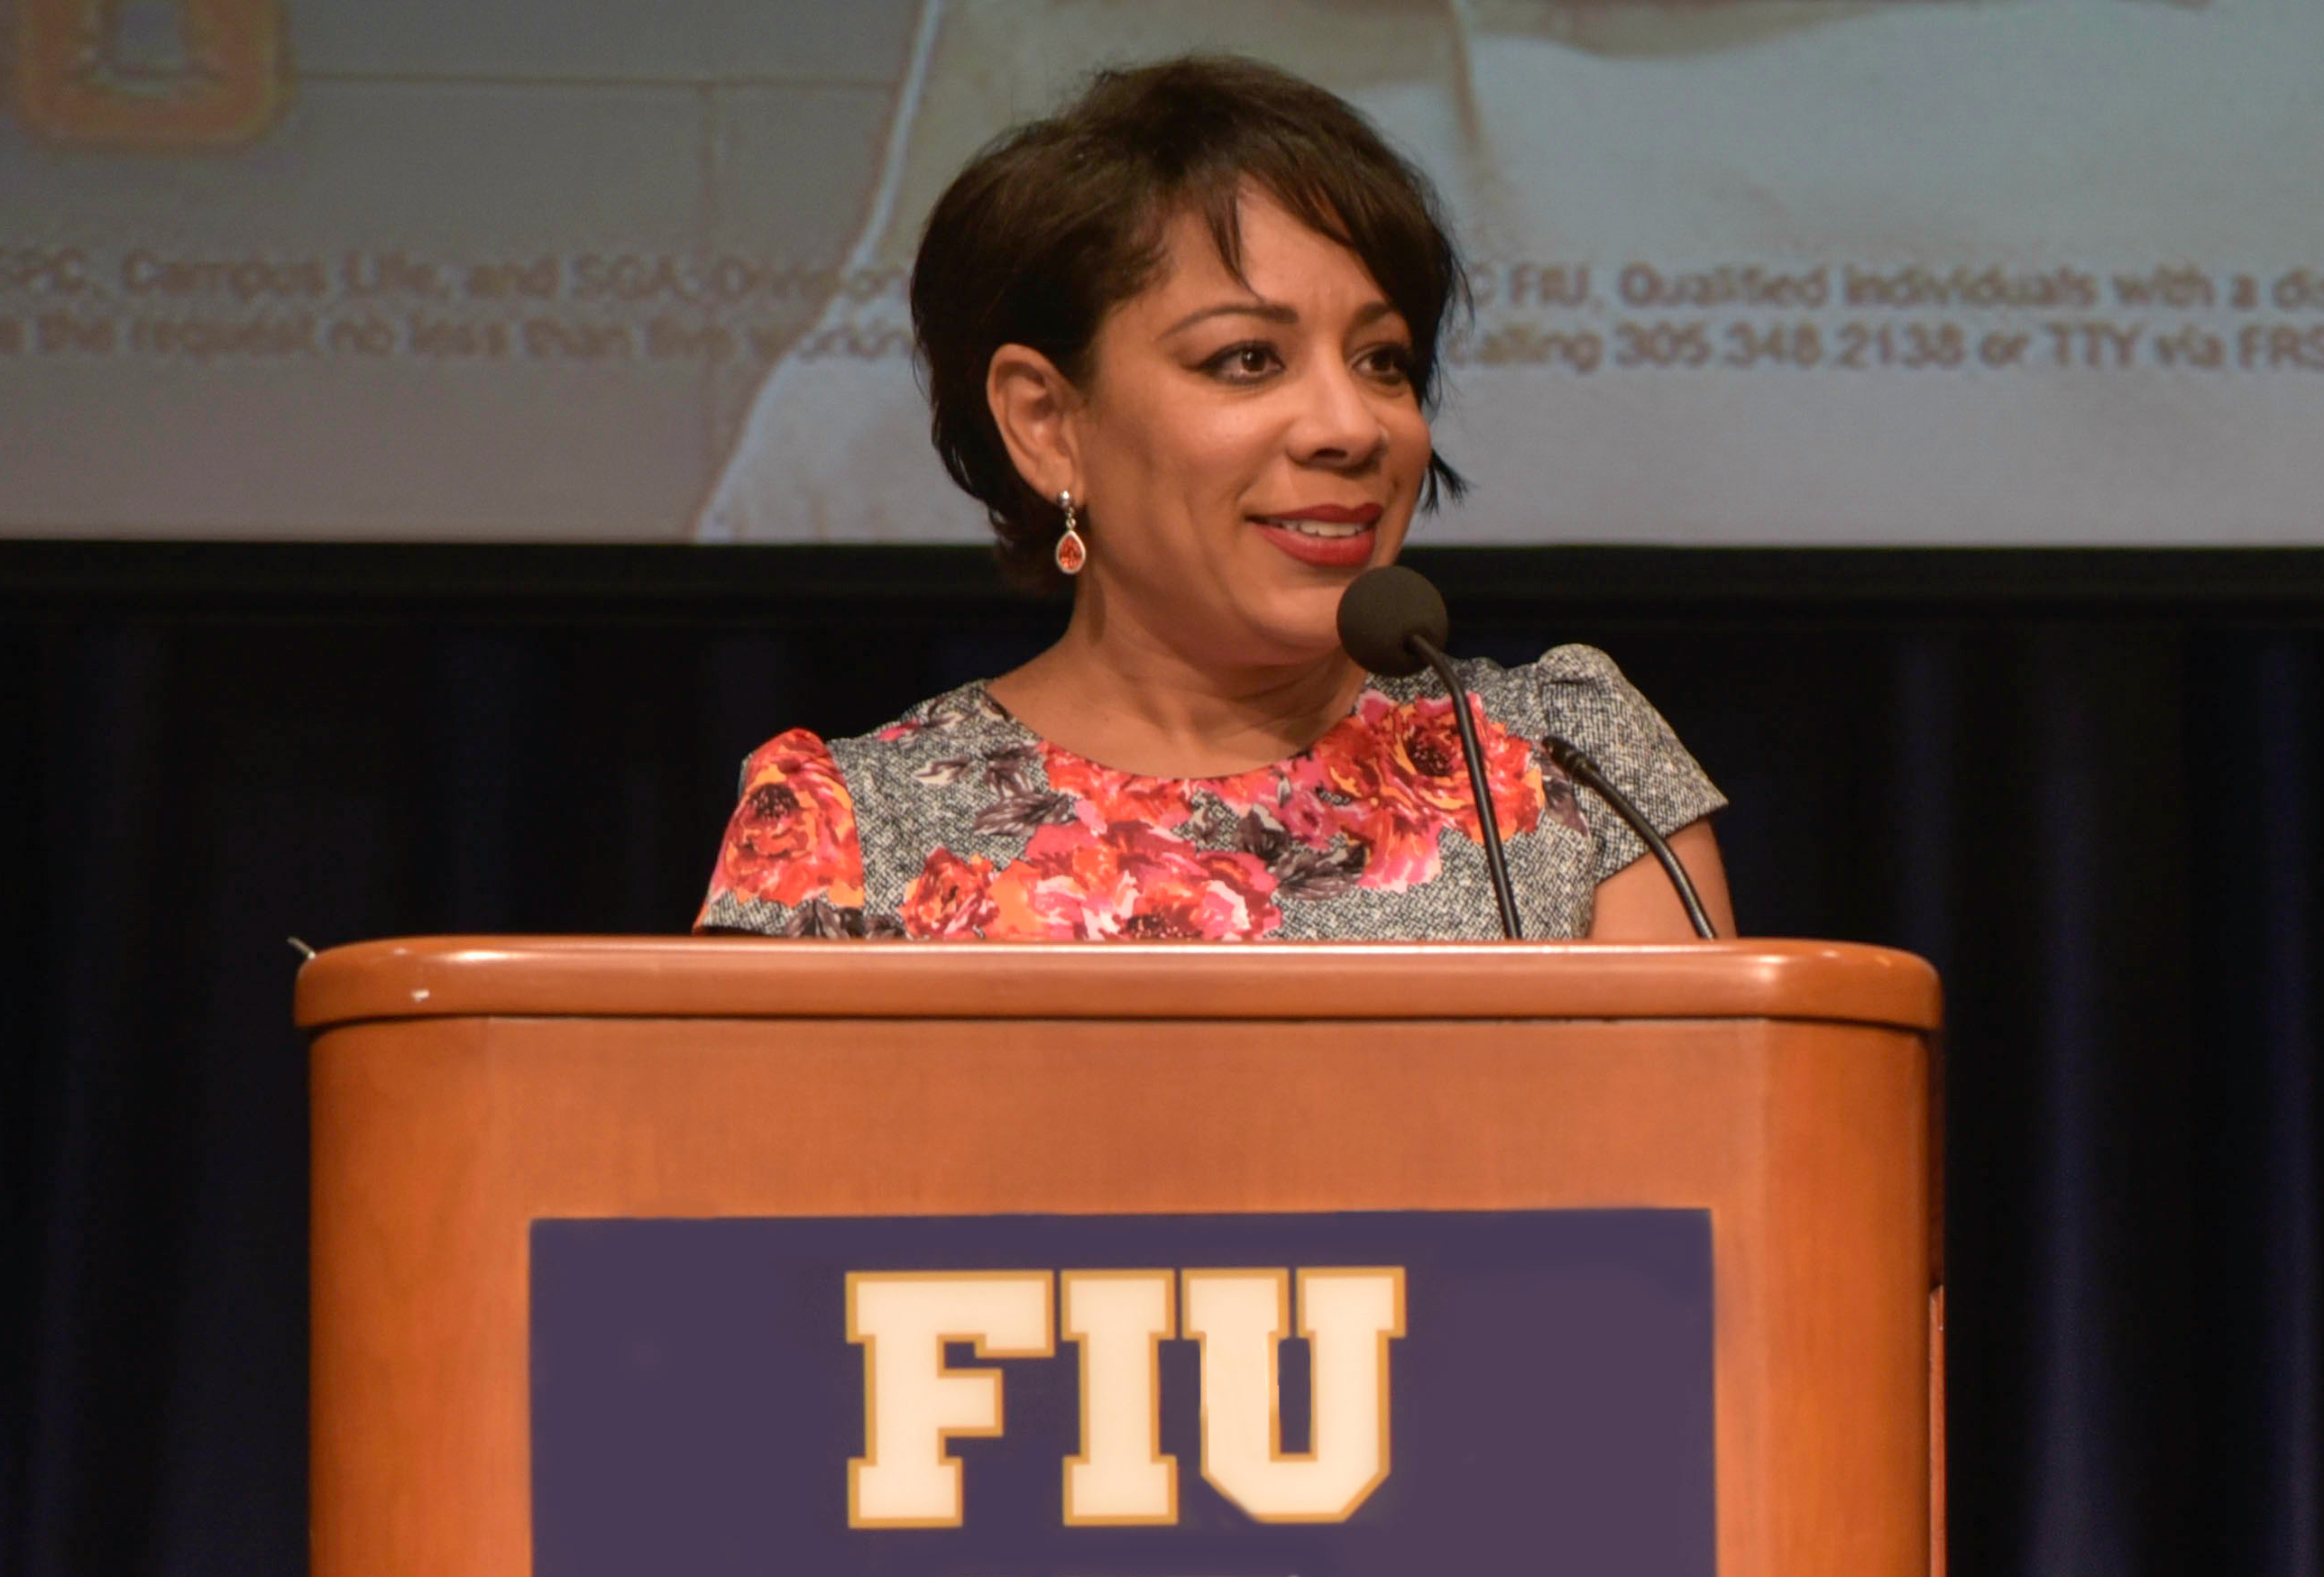 Leyva during her Feb. 22 speech at FIU